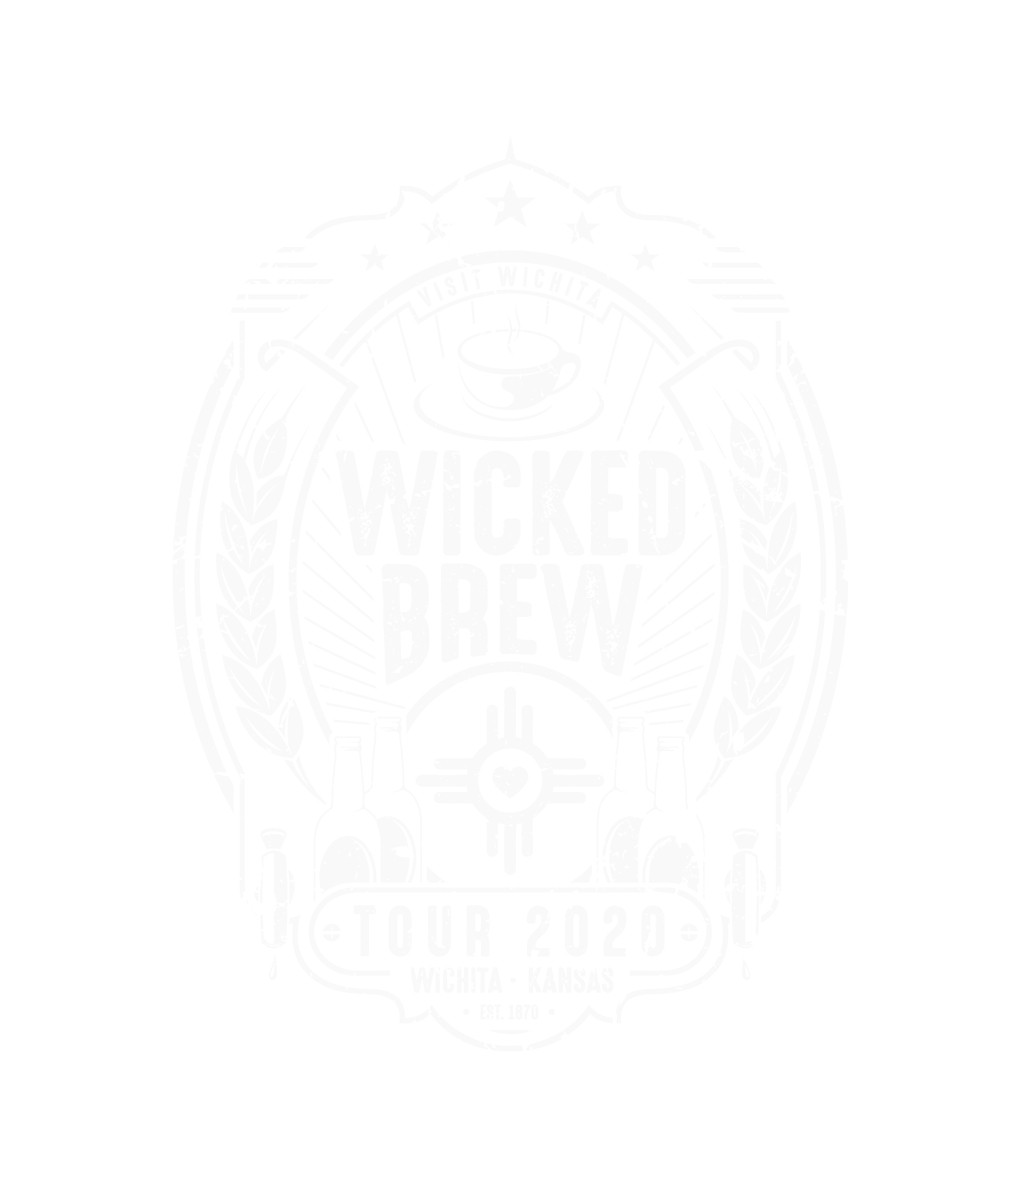 Vintage Beer and Coffee Design for the Wicked Brew Tour